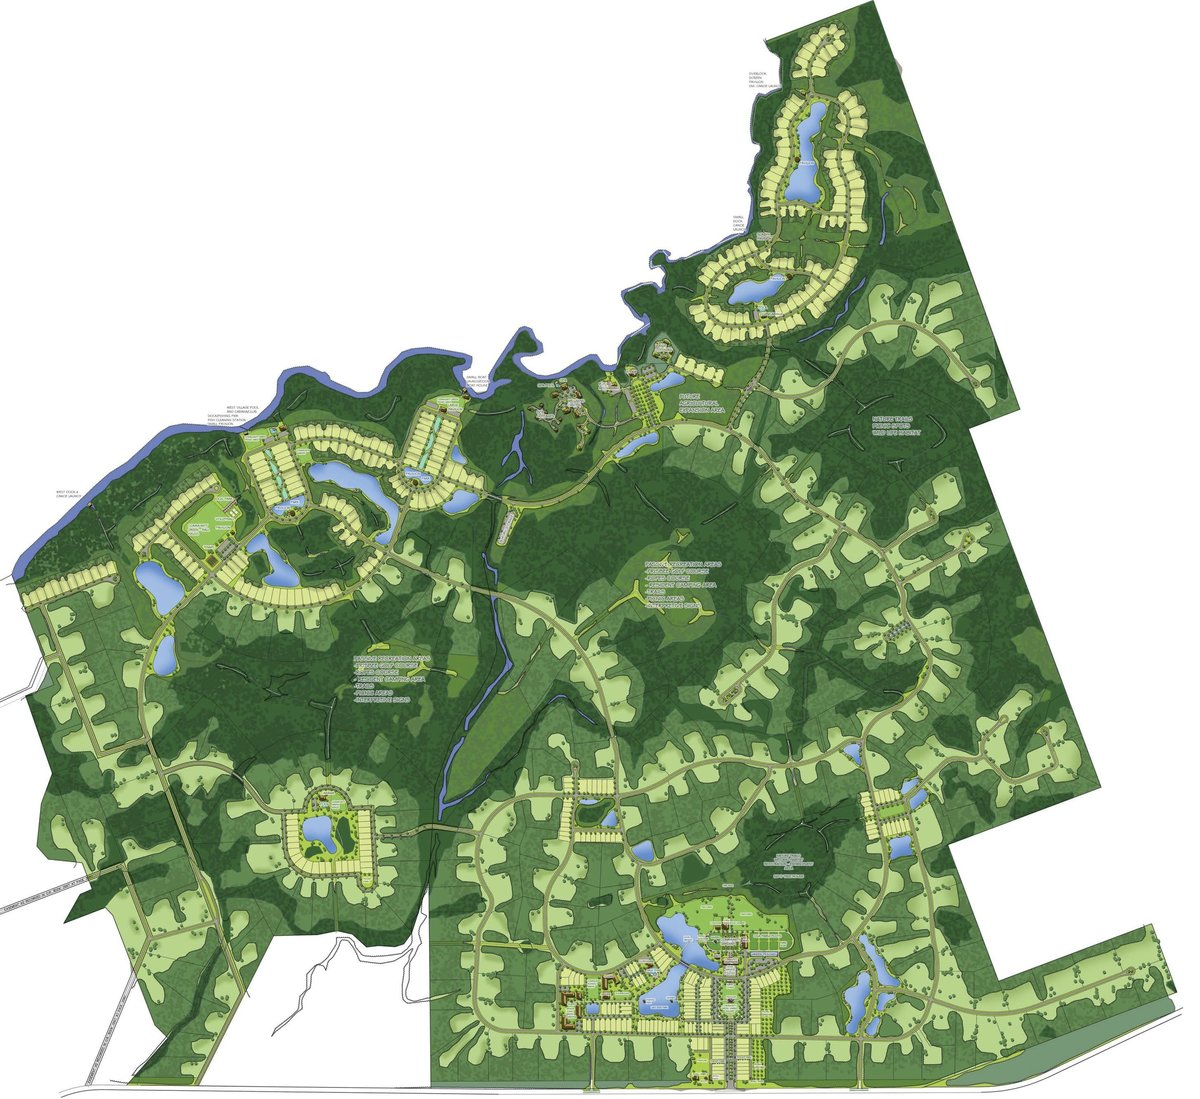 Longleaf Preserve Master Plan 2400 acres in the Florida Panhandle 2010